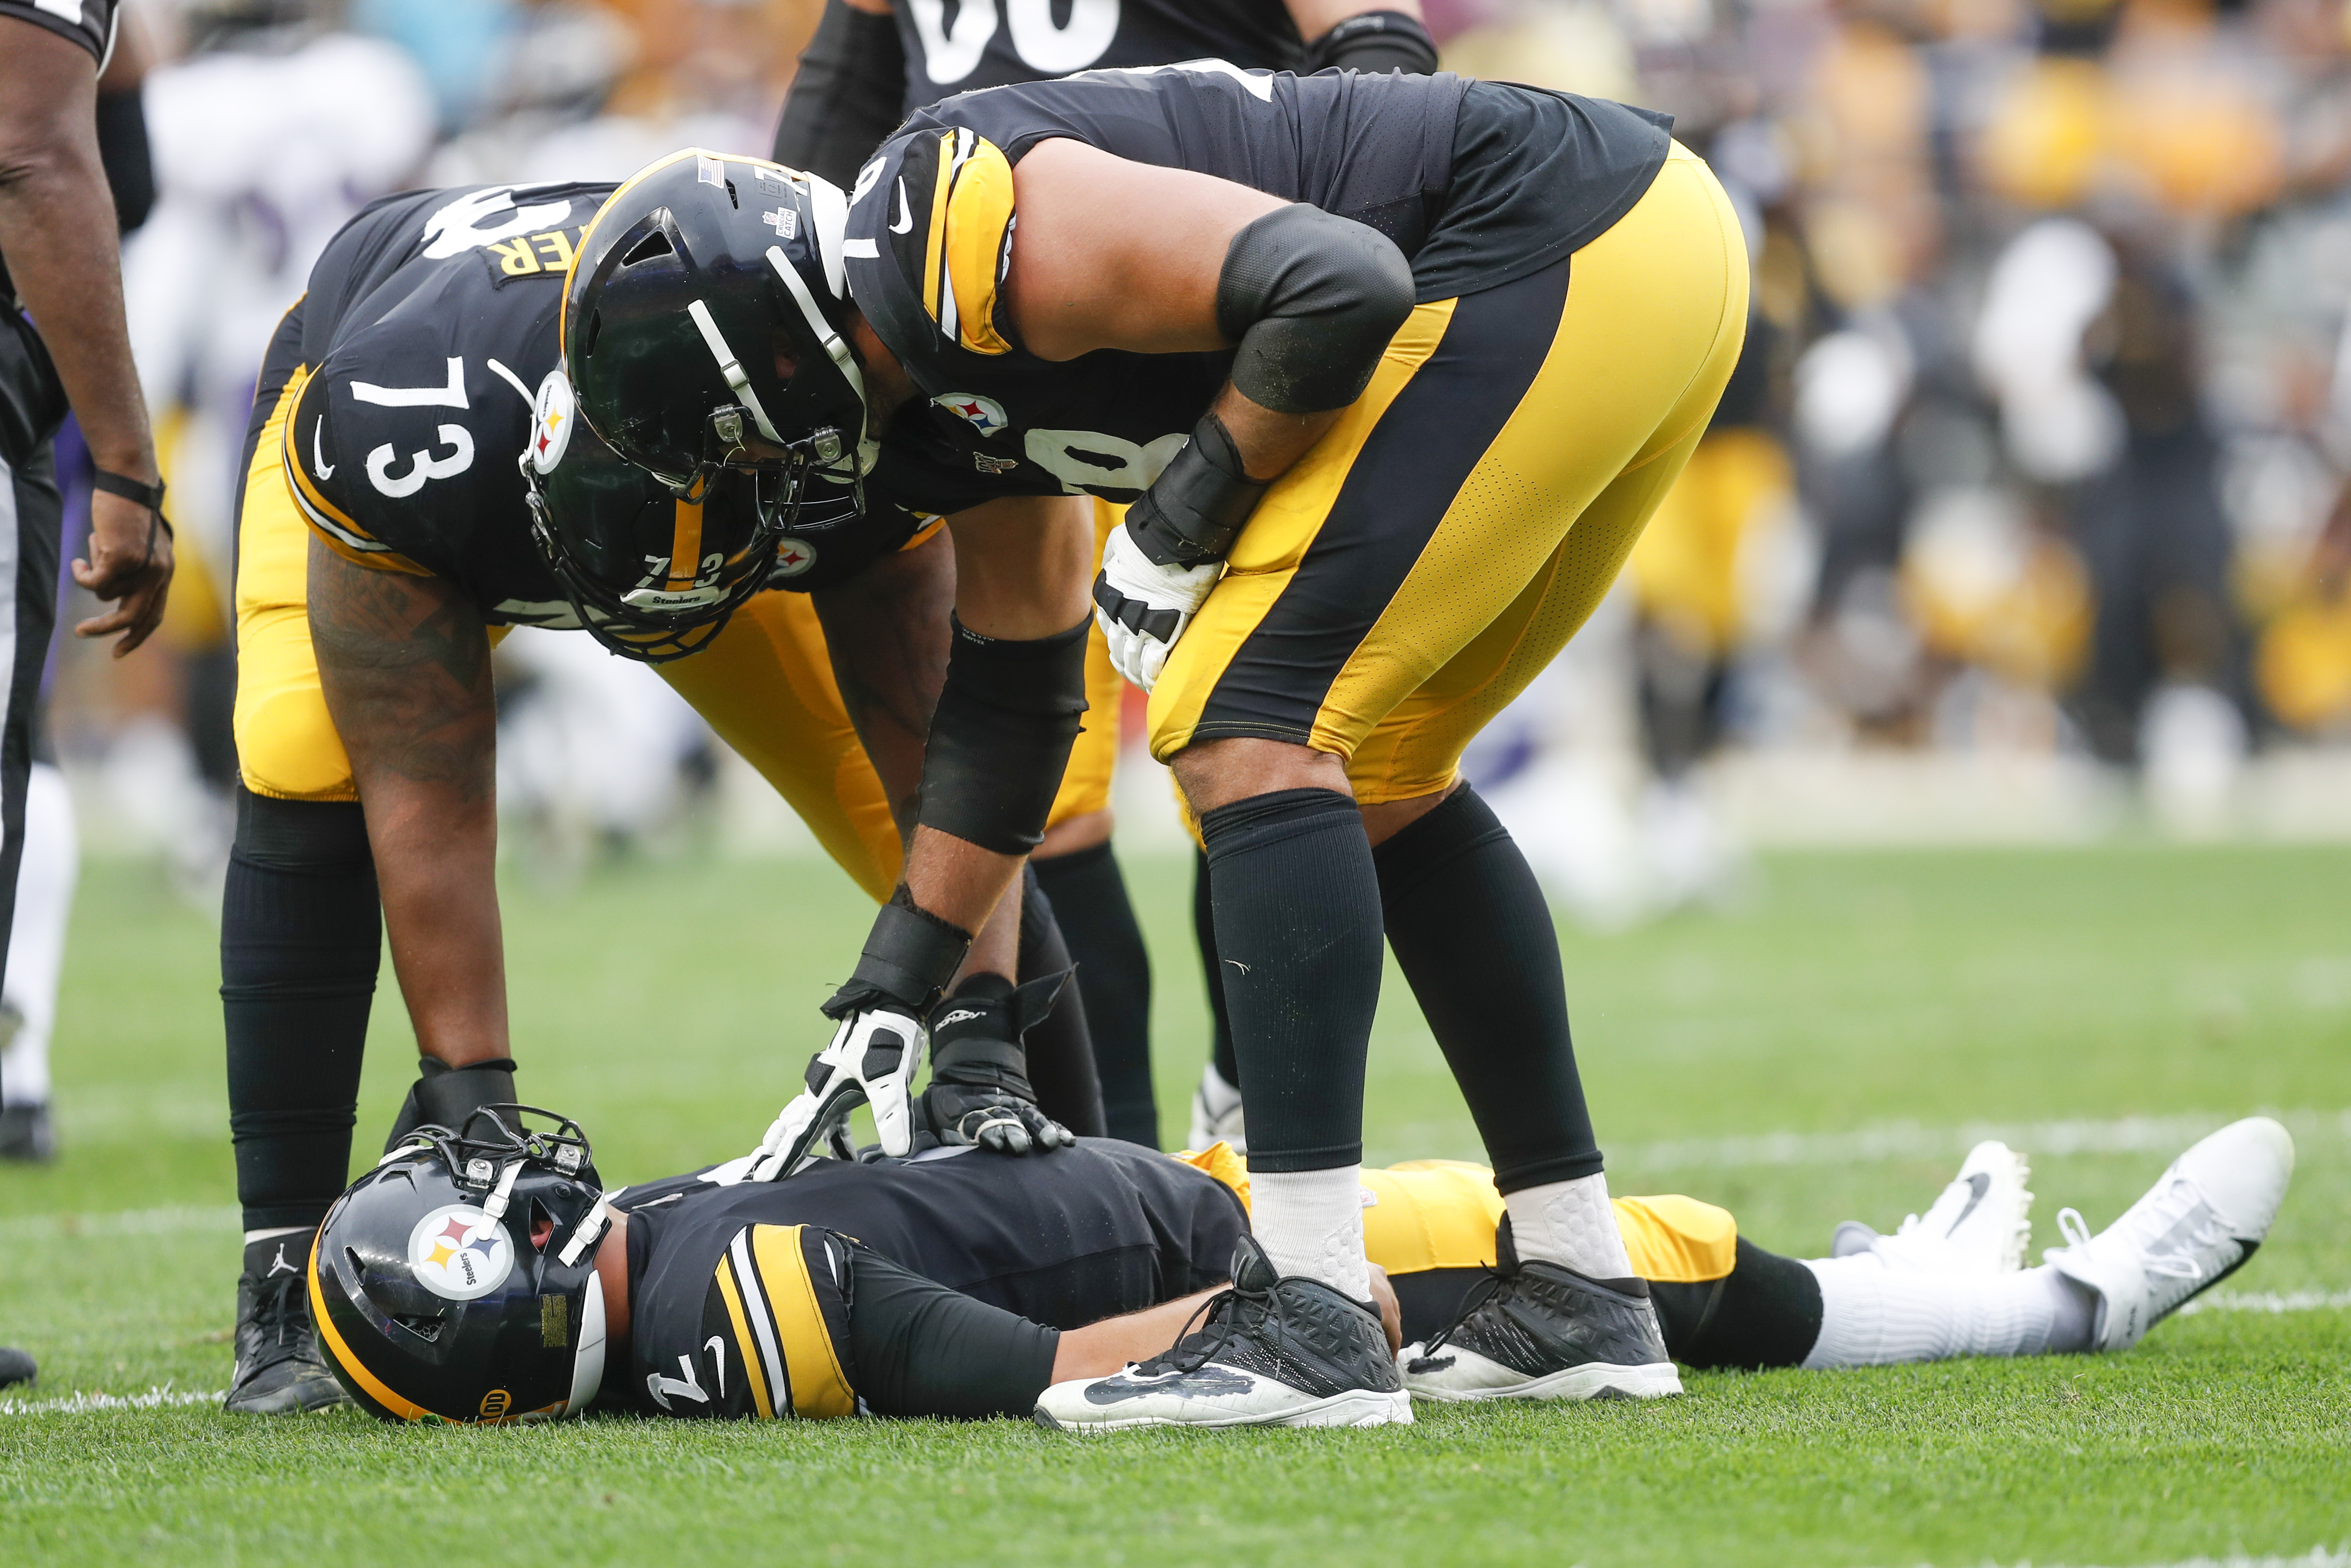 Mason Rudolph Knocked Out On Scary Helmet To Helmet Hit In Steelers Ravens Game The Washington Post